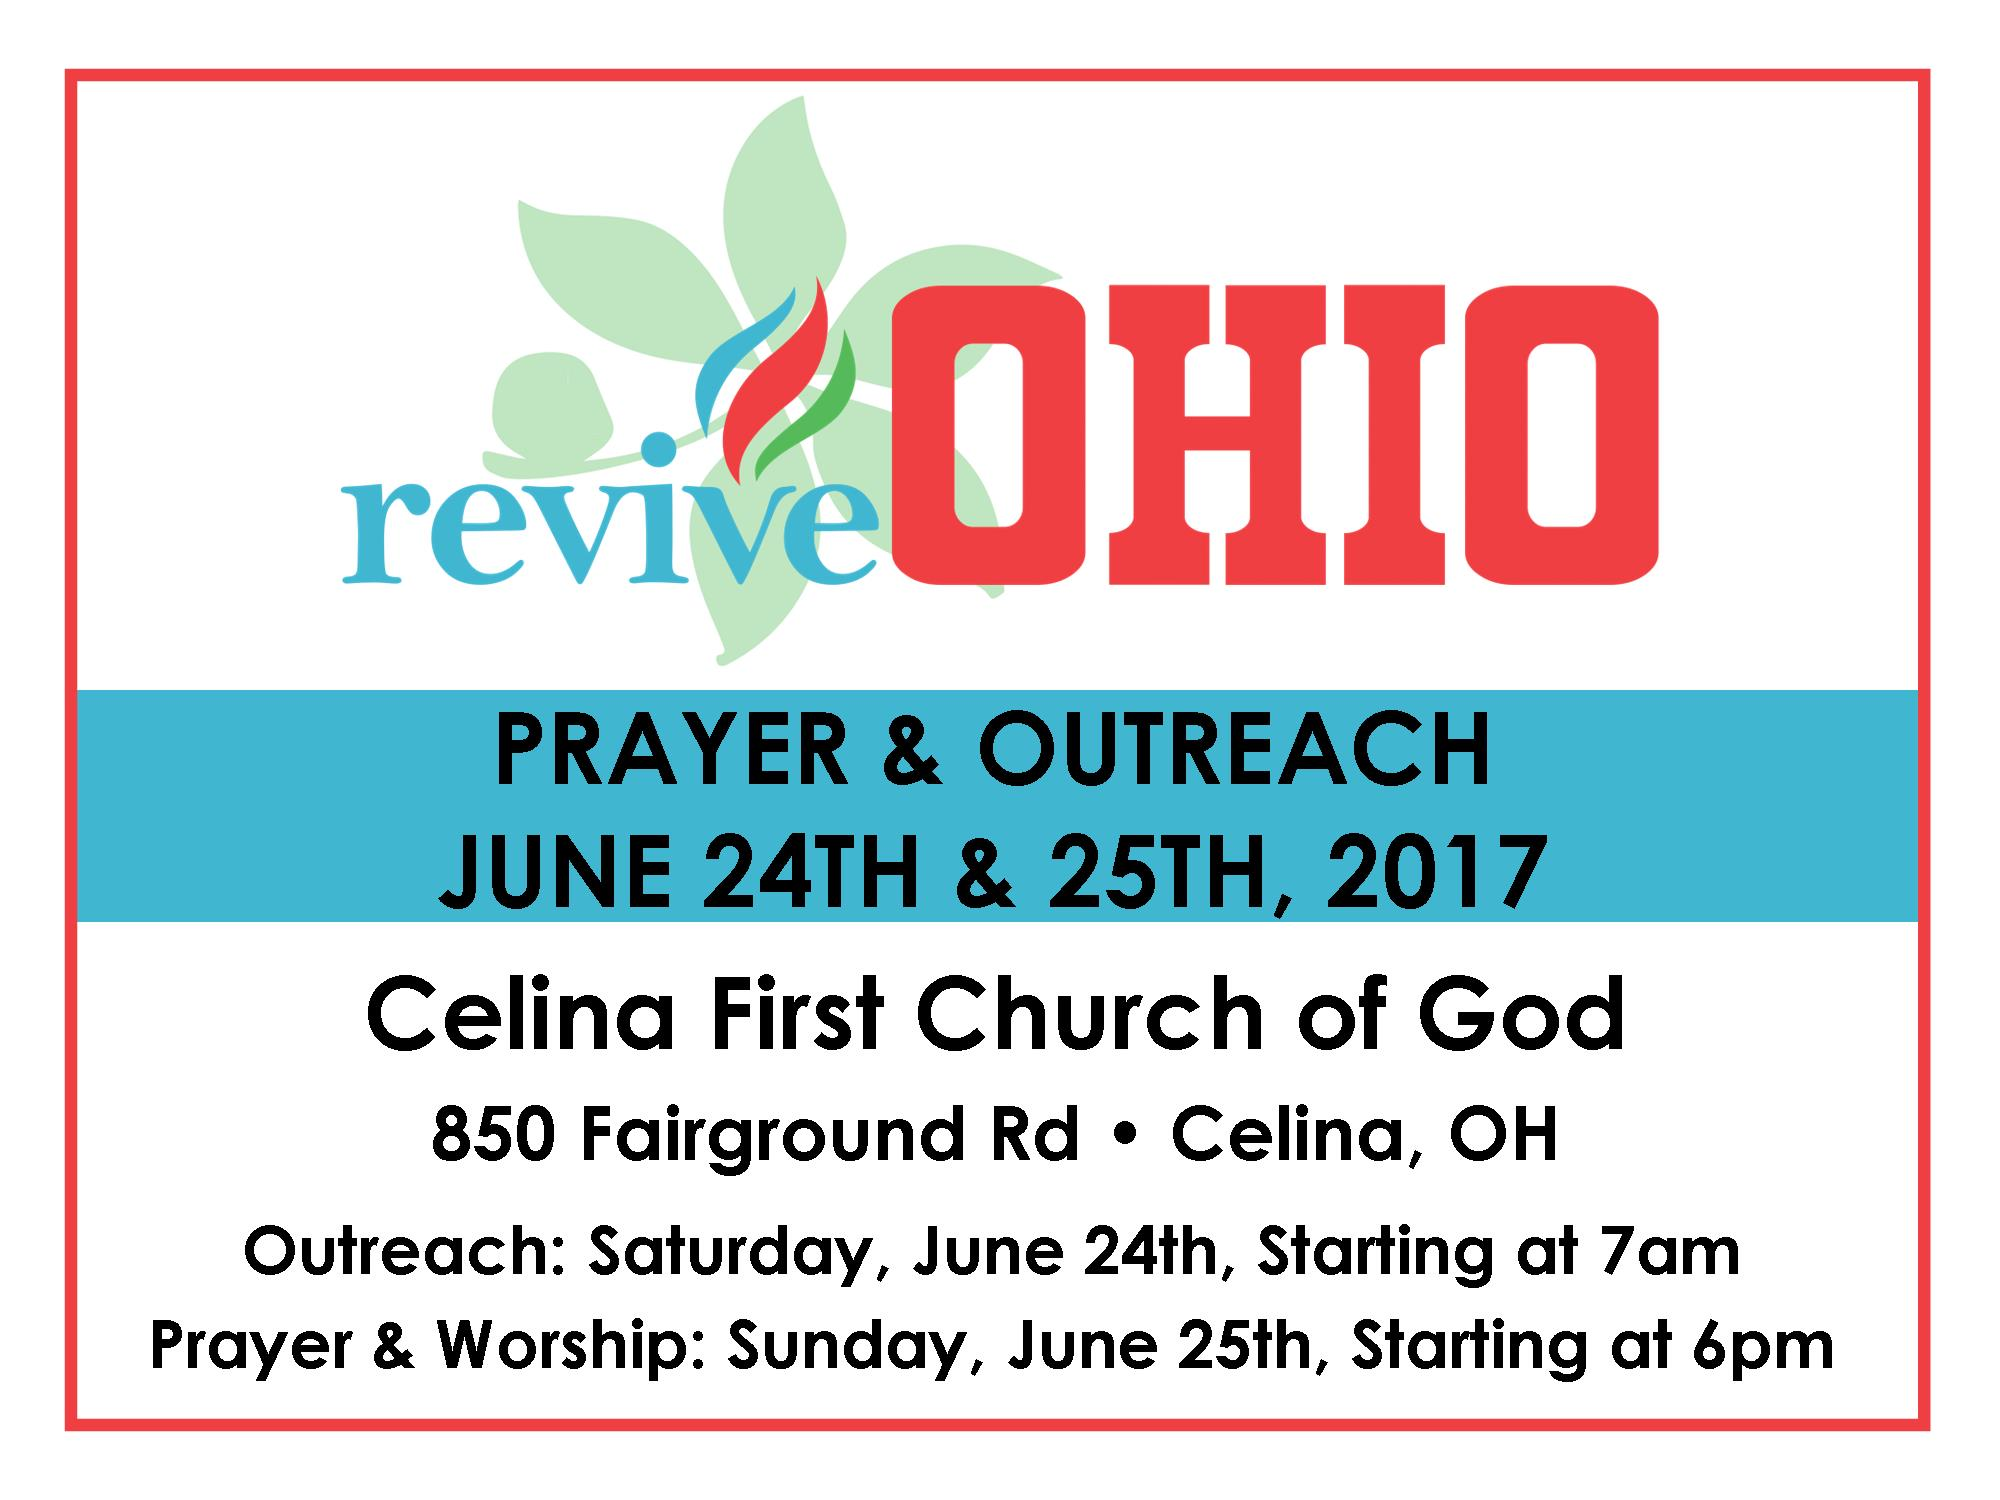 ReviveOHIO::Mercer County is meeting on Saturday, June 24 at 7:00am at Celina First Church of God at 850 Fairground Rd in Celina, beginning with prayer and breakfast before going out to pray in the community.At 11:45am all will come back to Celina First Church of God for Testimonies and Worship.On Sunday, June 25, there is Prayer and Worship at 6:00pm at Celina First Church of God.All are welcome!